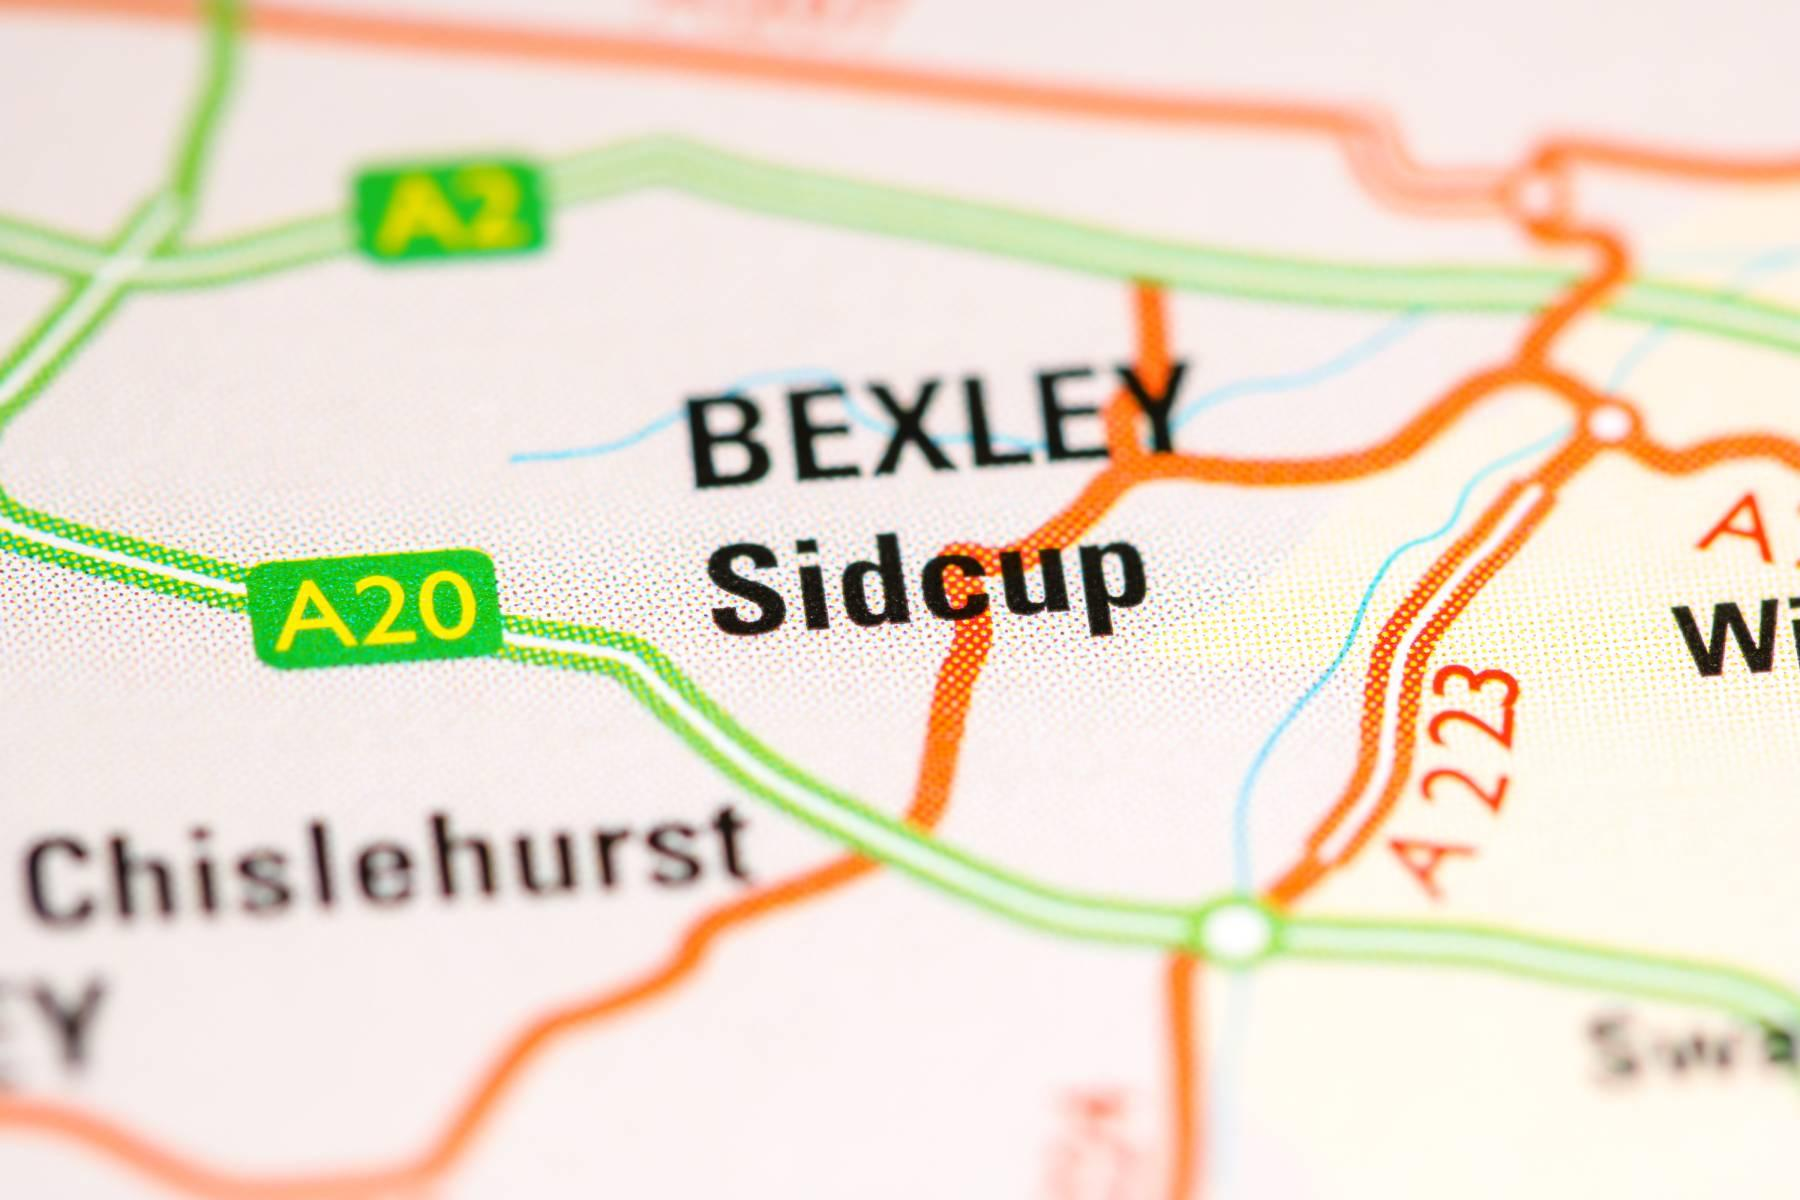 Living in Sidcup: Everything you need to know